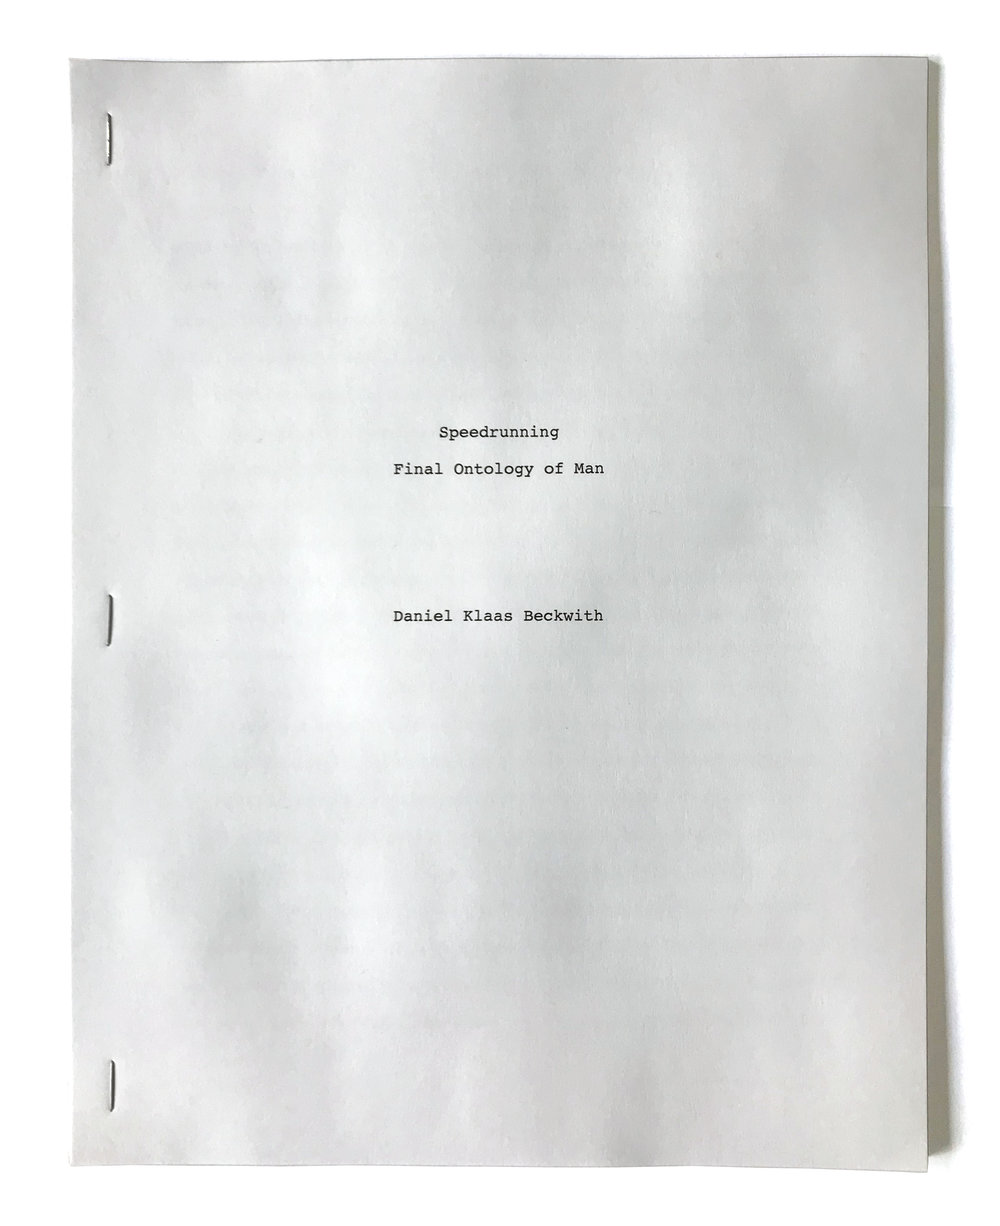 Daniel Klaas Beckwith  Speedrunning: Final Ontology of Man,  2017 an abridged article positing speedrunning as the pinnacle of human achievement and last breath before the post human moment staple bound text, 33 pages 11 x 8 1/2 inches (28 x 22 cm) DKB1